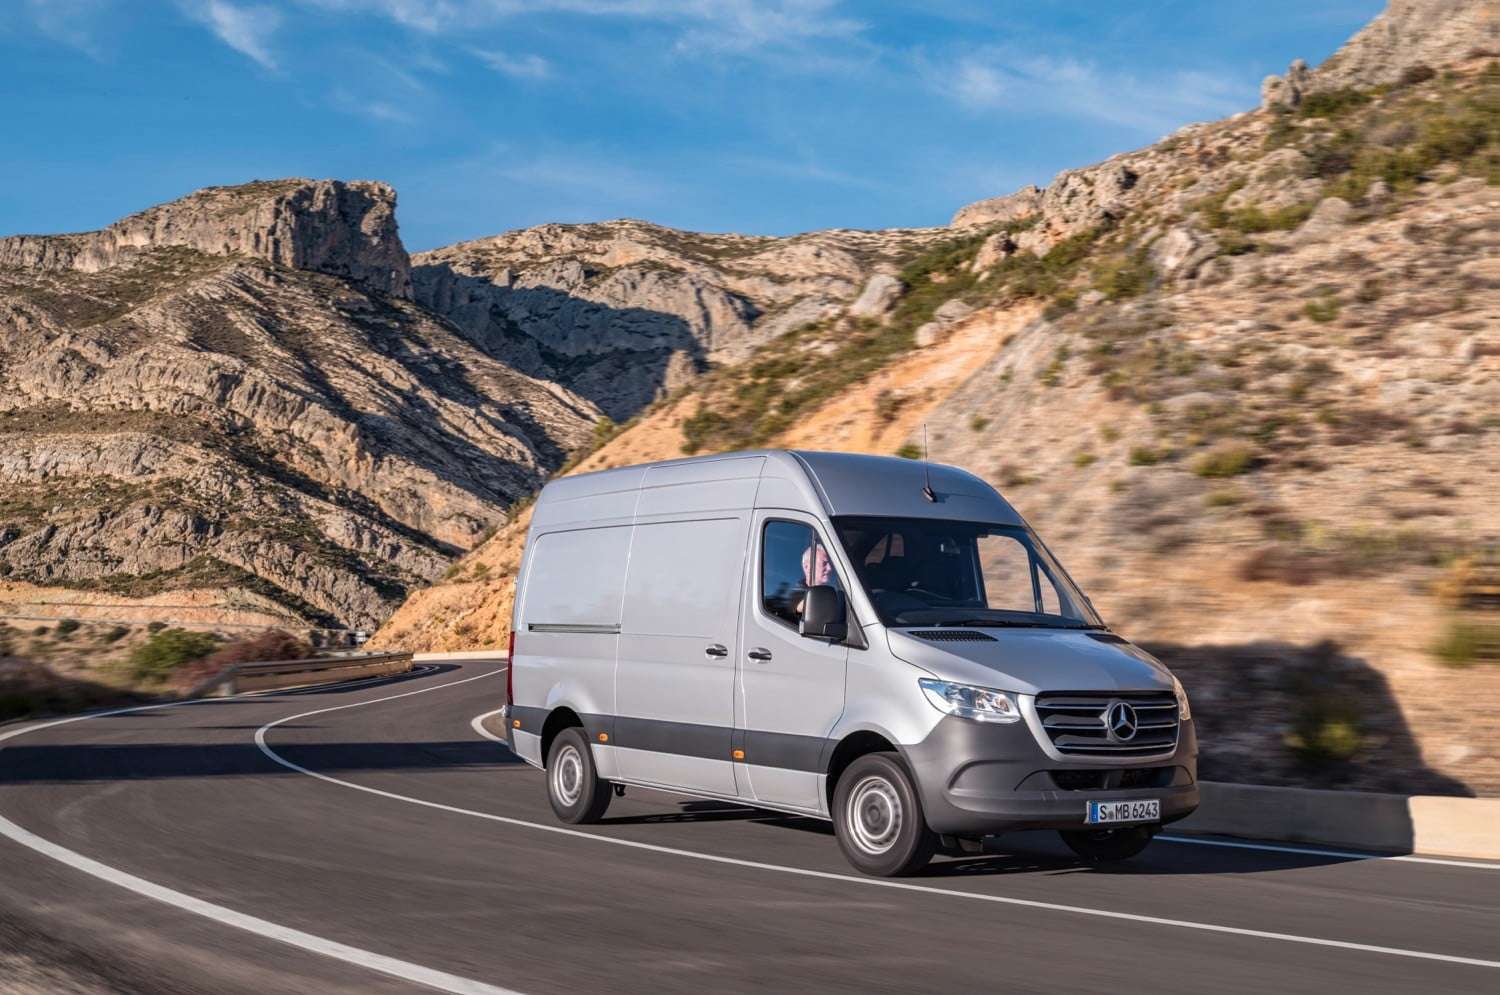 New Mercedes Benz Sprinter Factory Opens With 20000 Amazon Orders